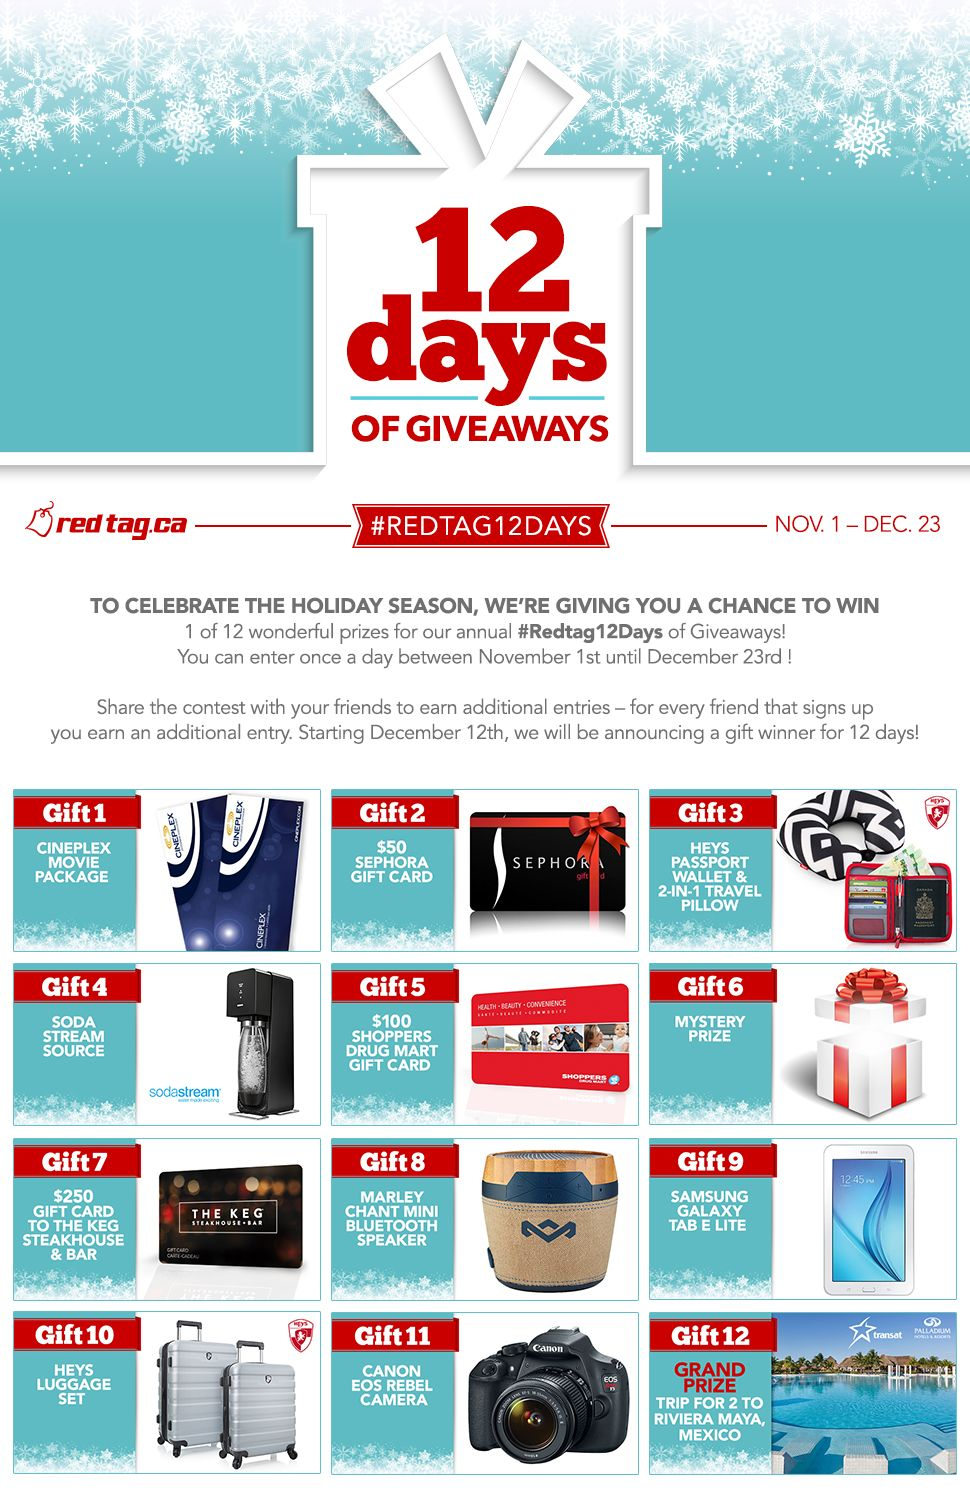 Travel contests and giveaways